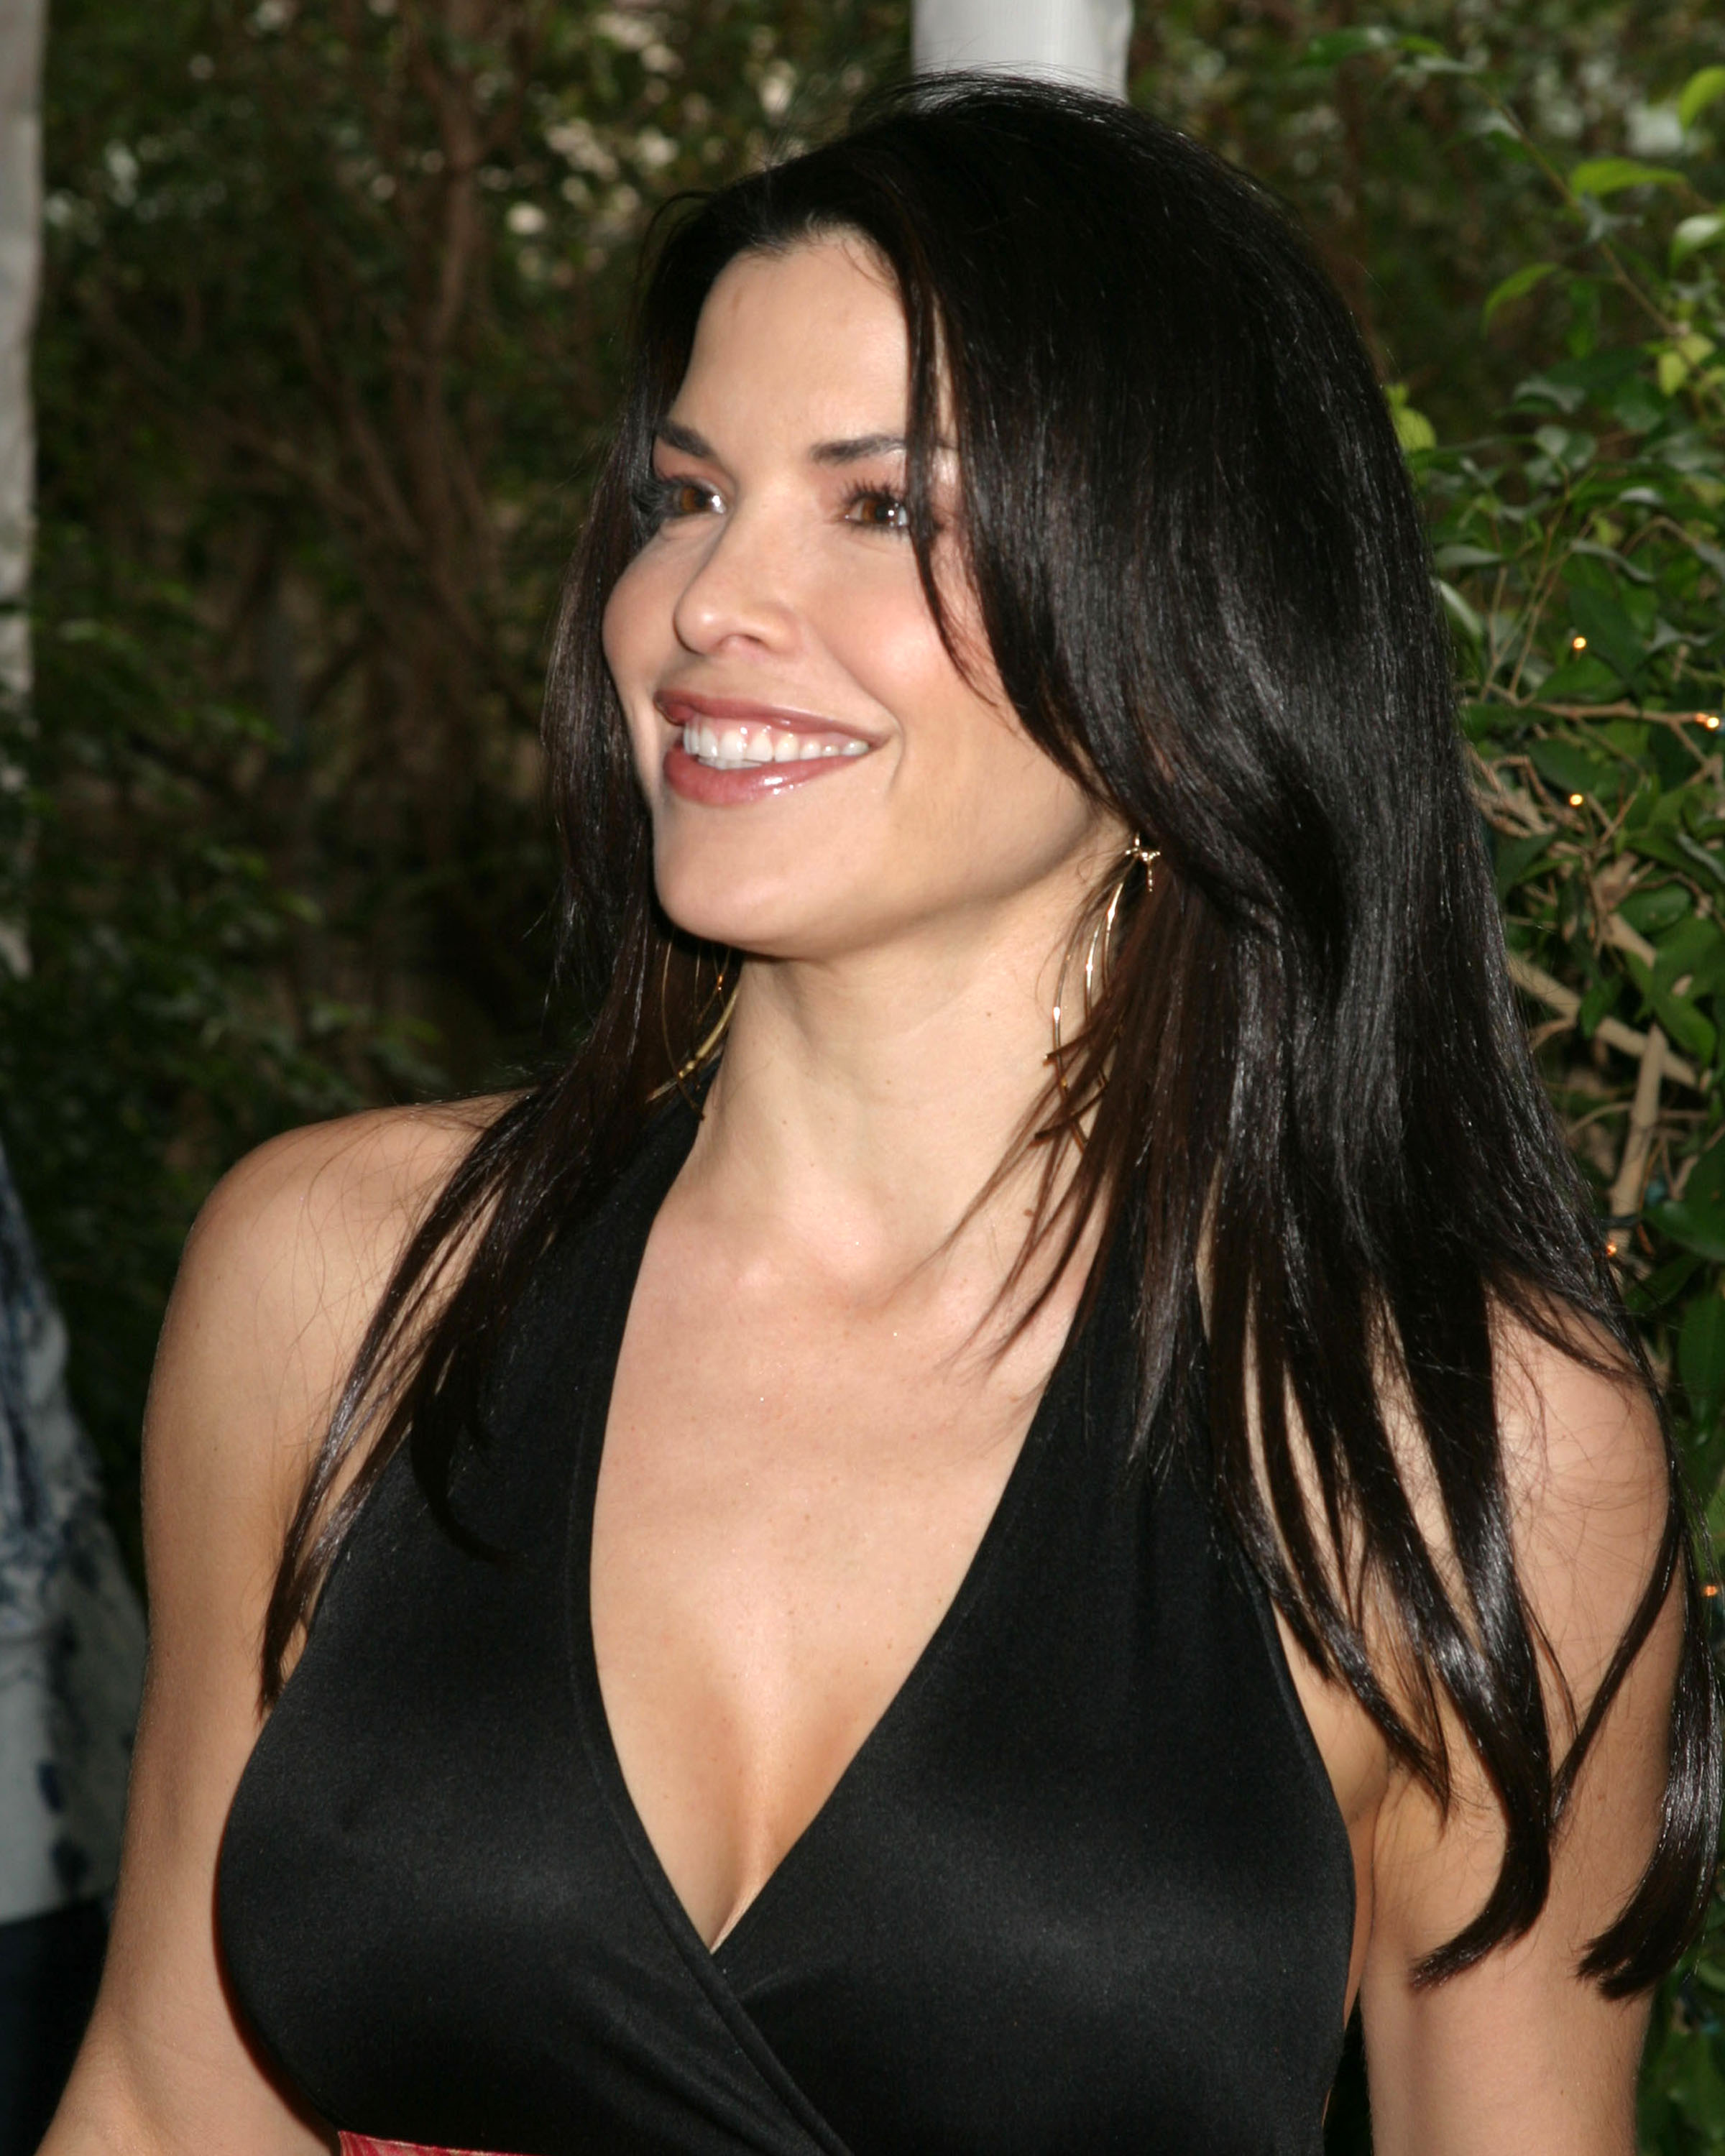 lauren sanchez - photo #32